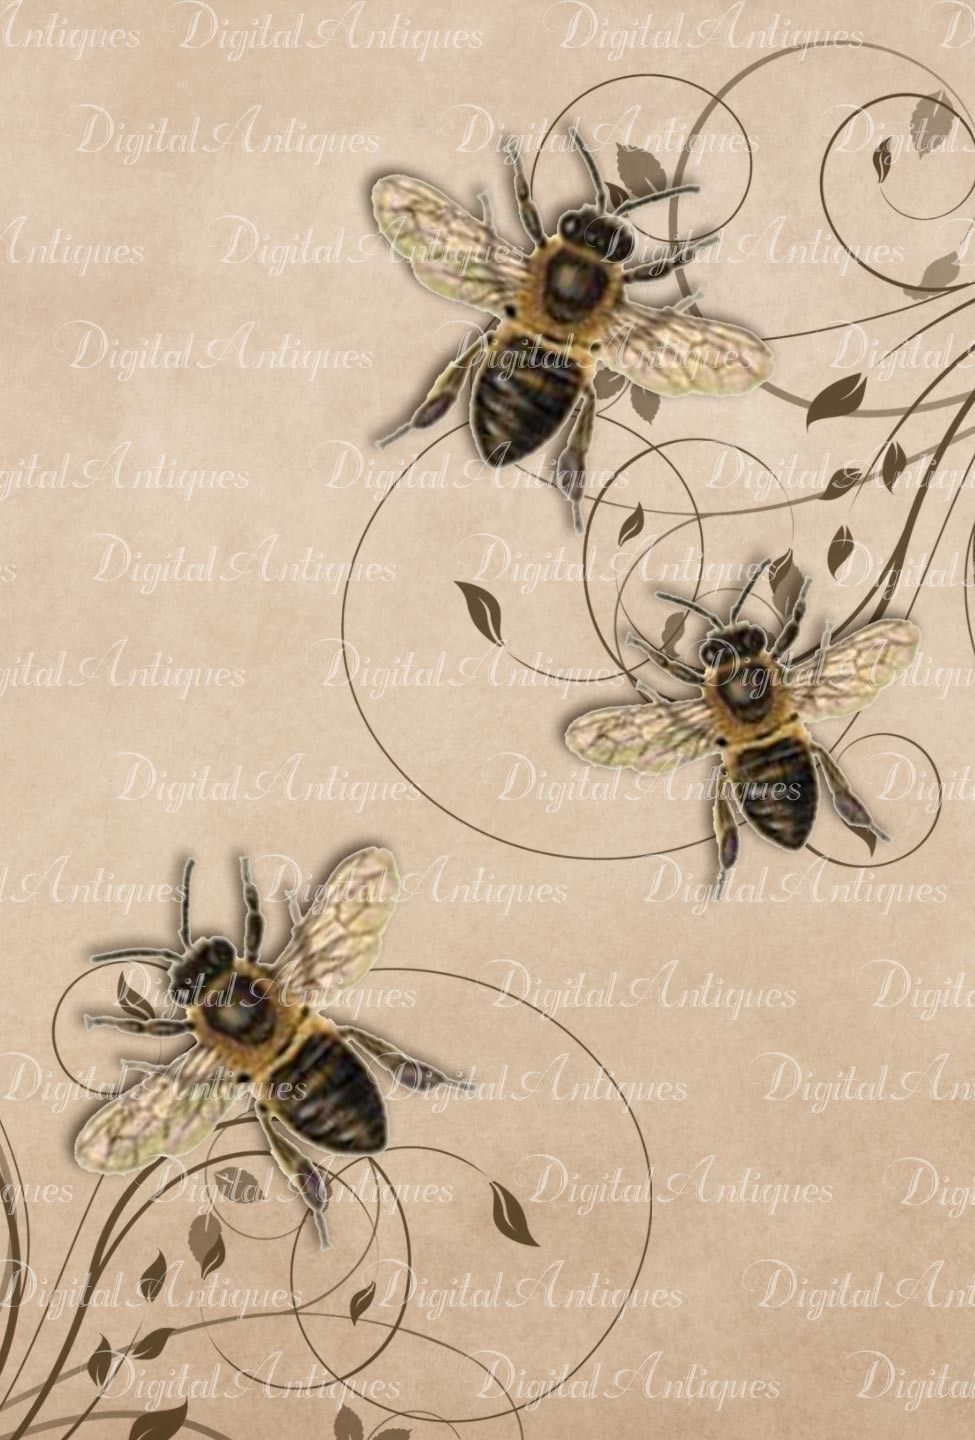 Vintage Bees Printable Images Digital Download. $3.50, via Etsy.